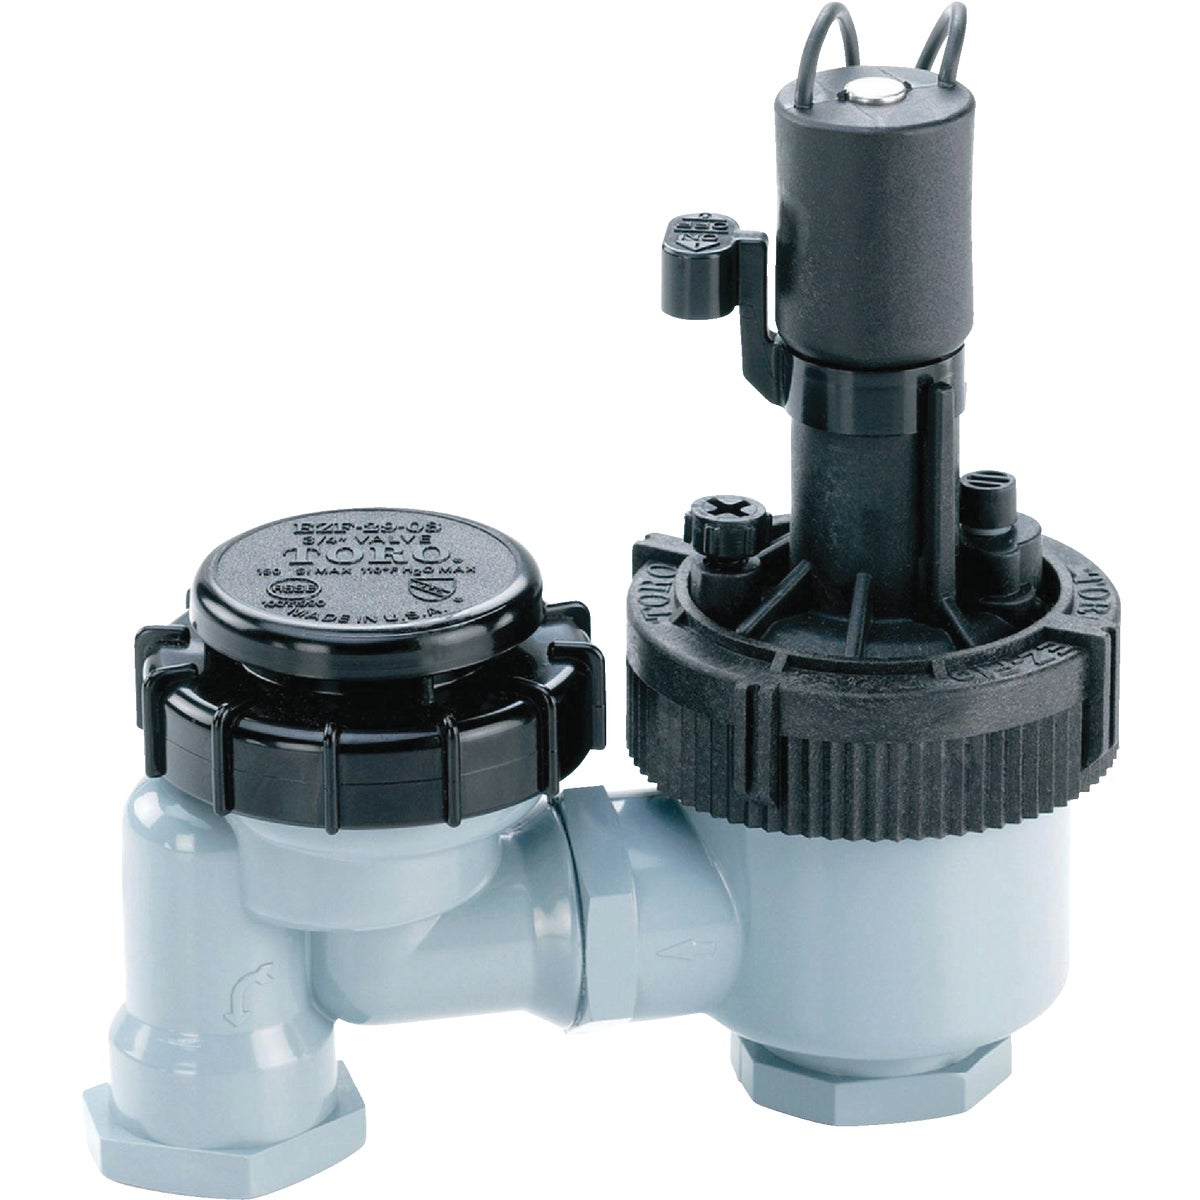 """3/4"""" ANTI SIPHON VALVE - 53763 by Toro/elect Appl Ordr"""